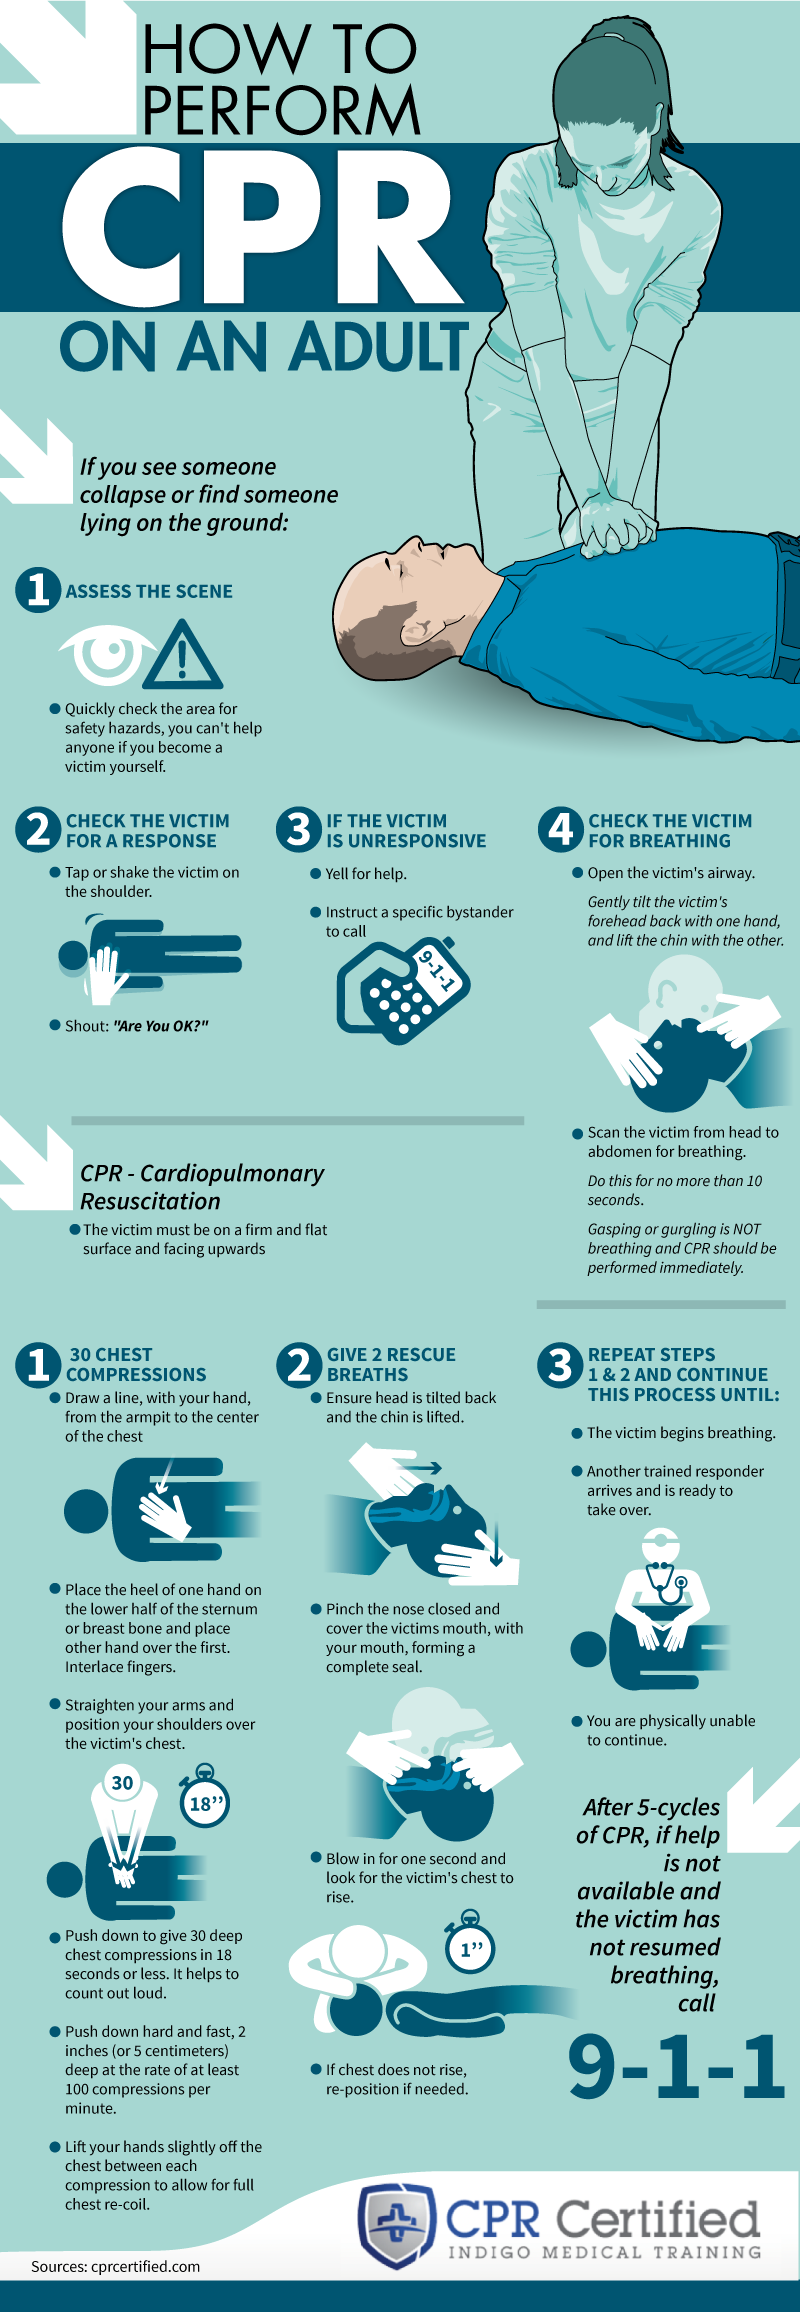 How to perform cpr on an adult infographic cardiopulmonary resuscitation should only be performed by a trained first responder or an individual with a cpr certification to get certified in cpr xflitez Choice Image